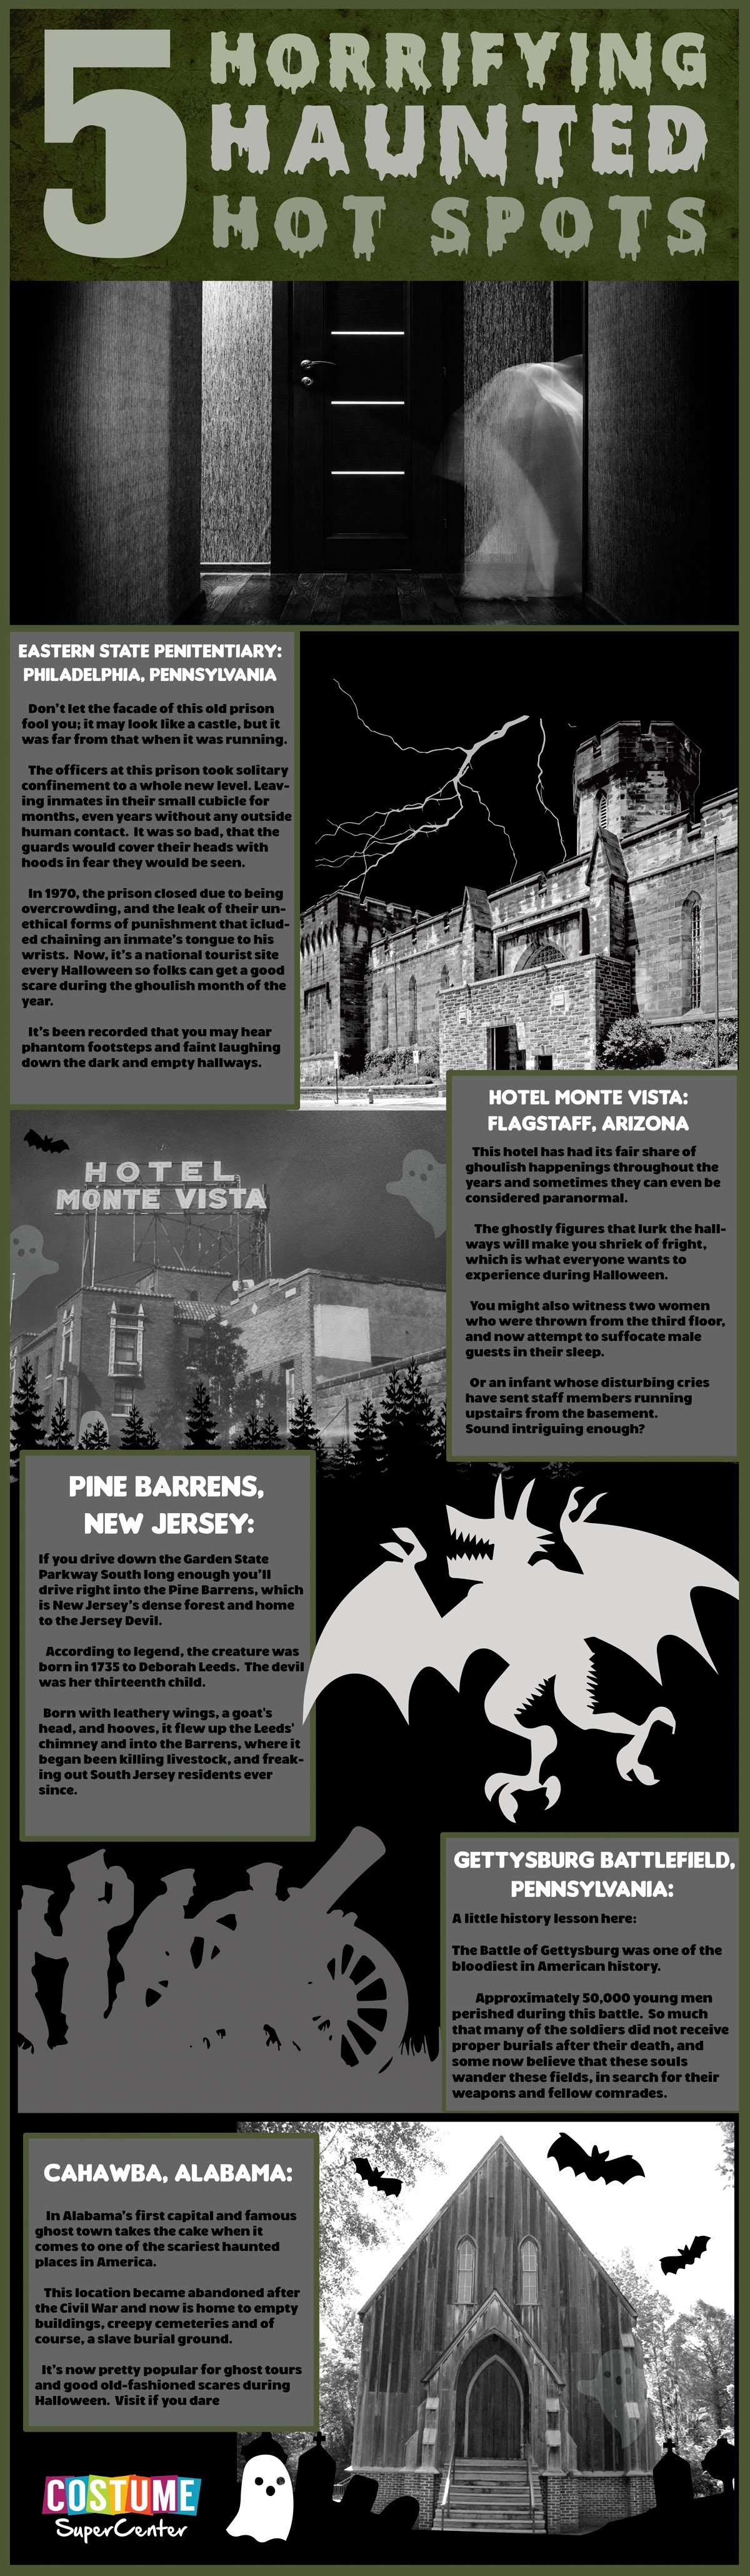 5 Horrifying Haunted hot Spots #infographic